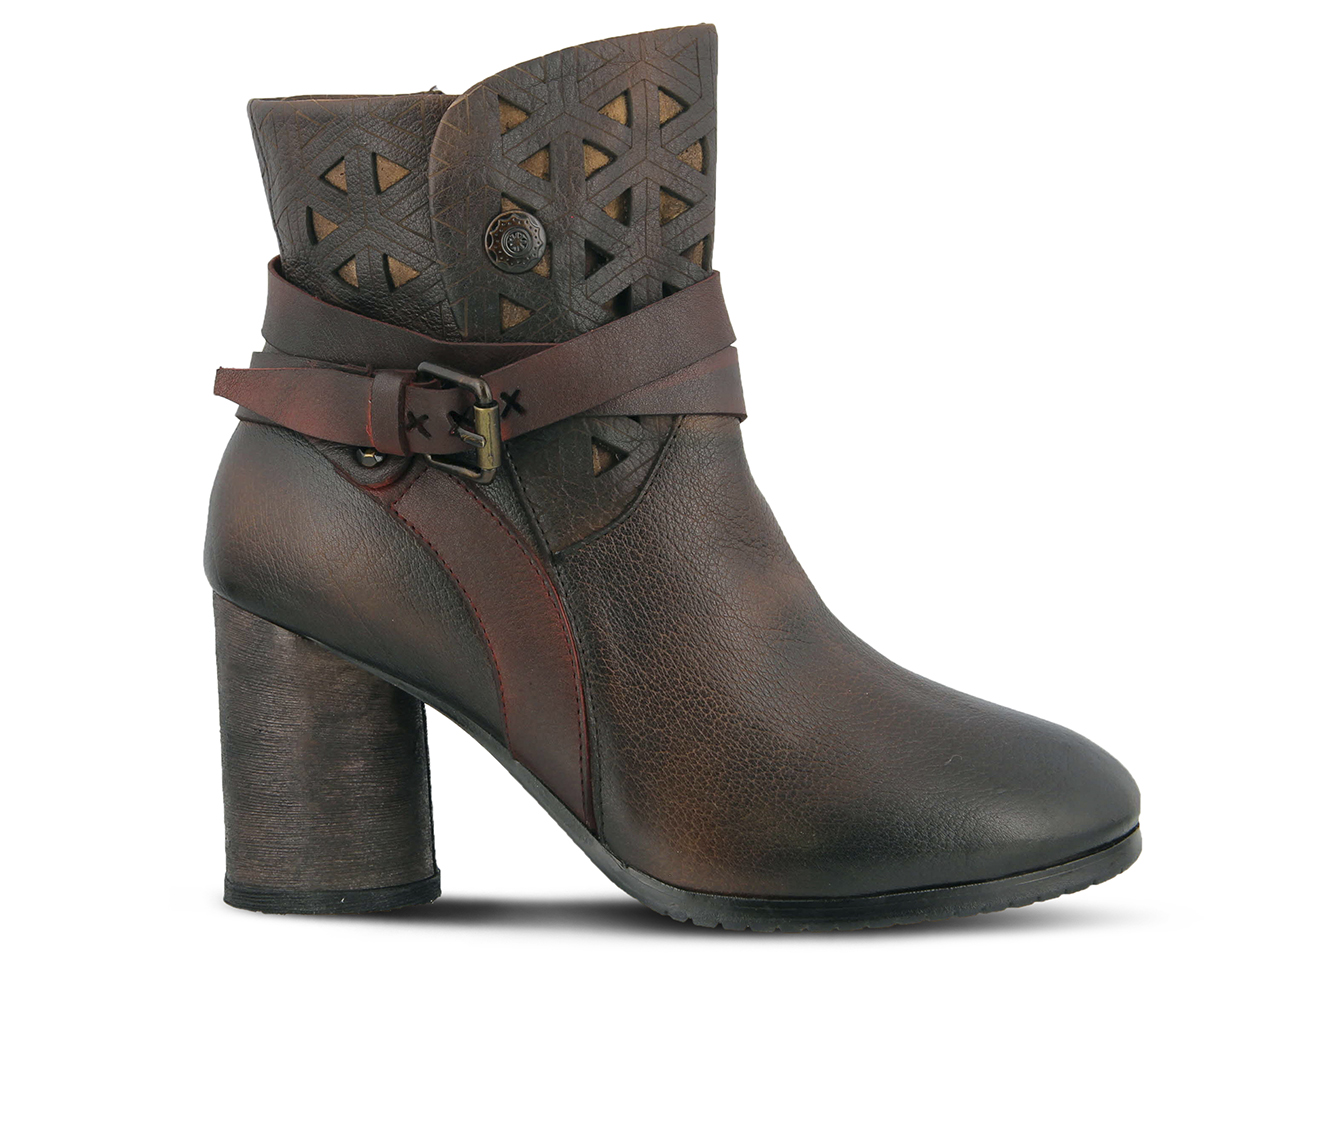 L'Artiste Madonna Women's Boots (Brown Leather)